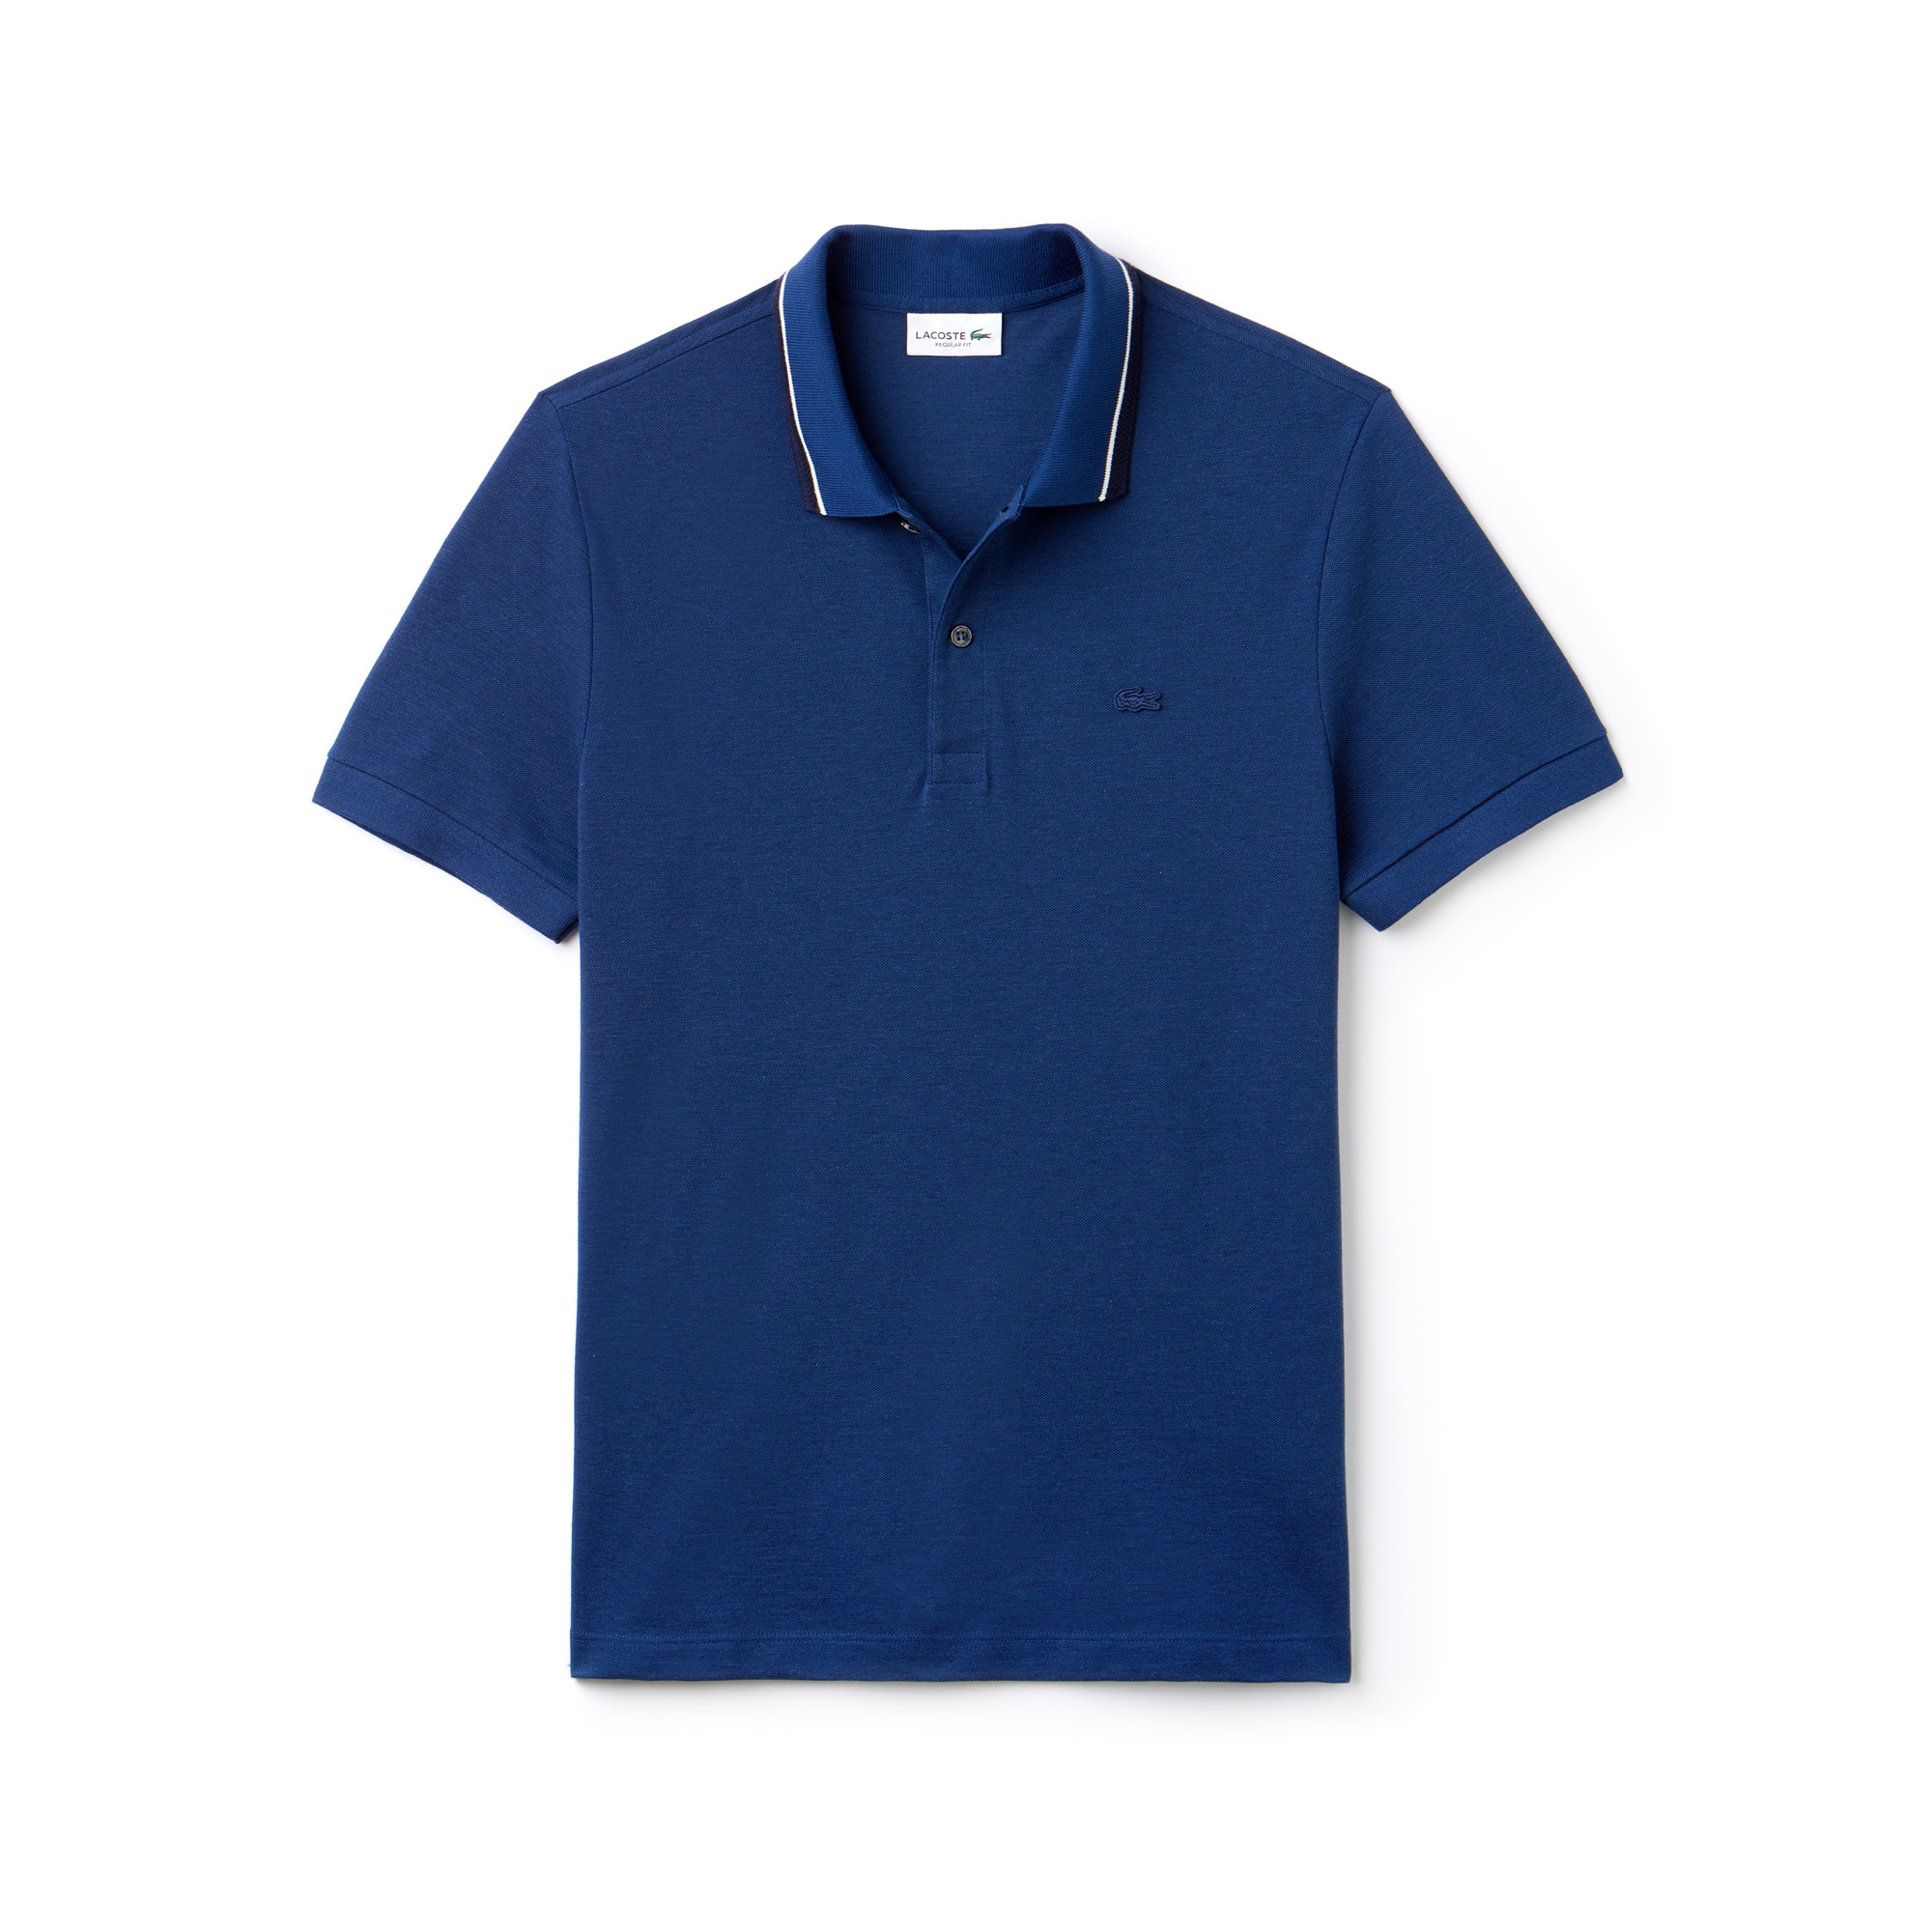 라코스테 Lacoste Mens Regular Fit Piped Neck Flamme Pique Polo,inkwell/navy blue-flour